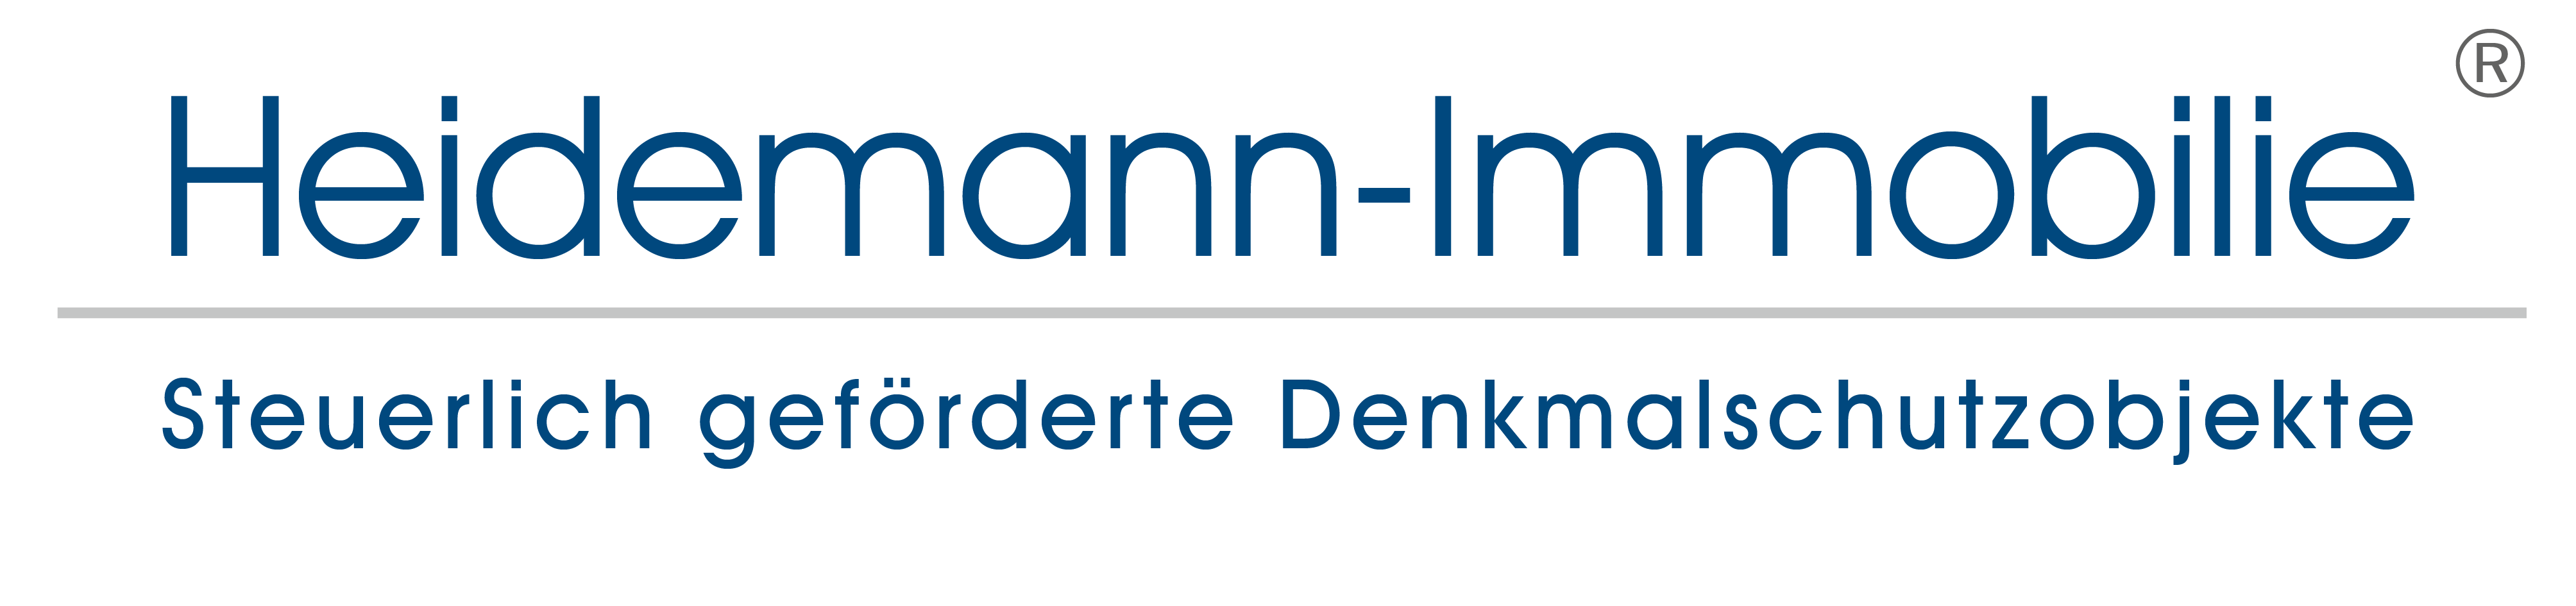 Heidemann Immobilie